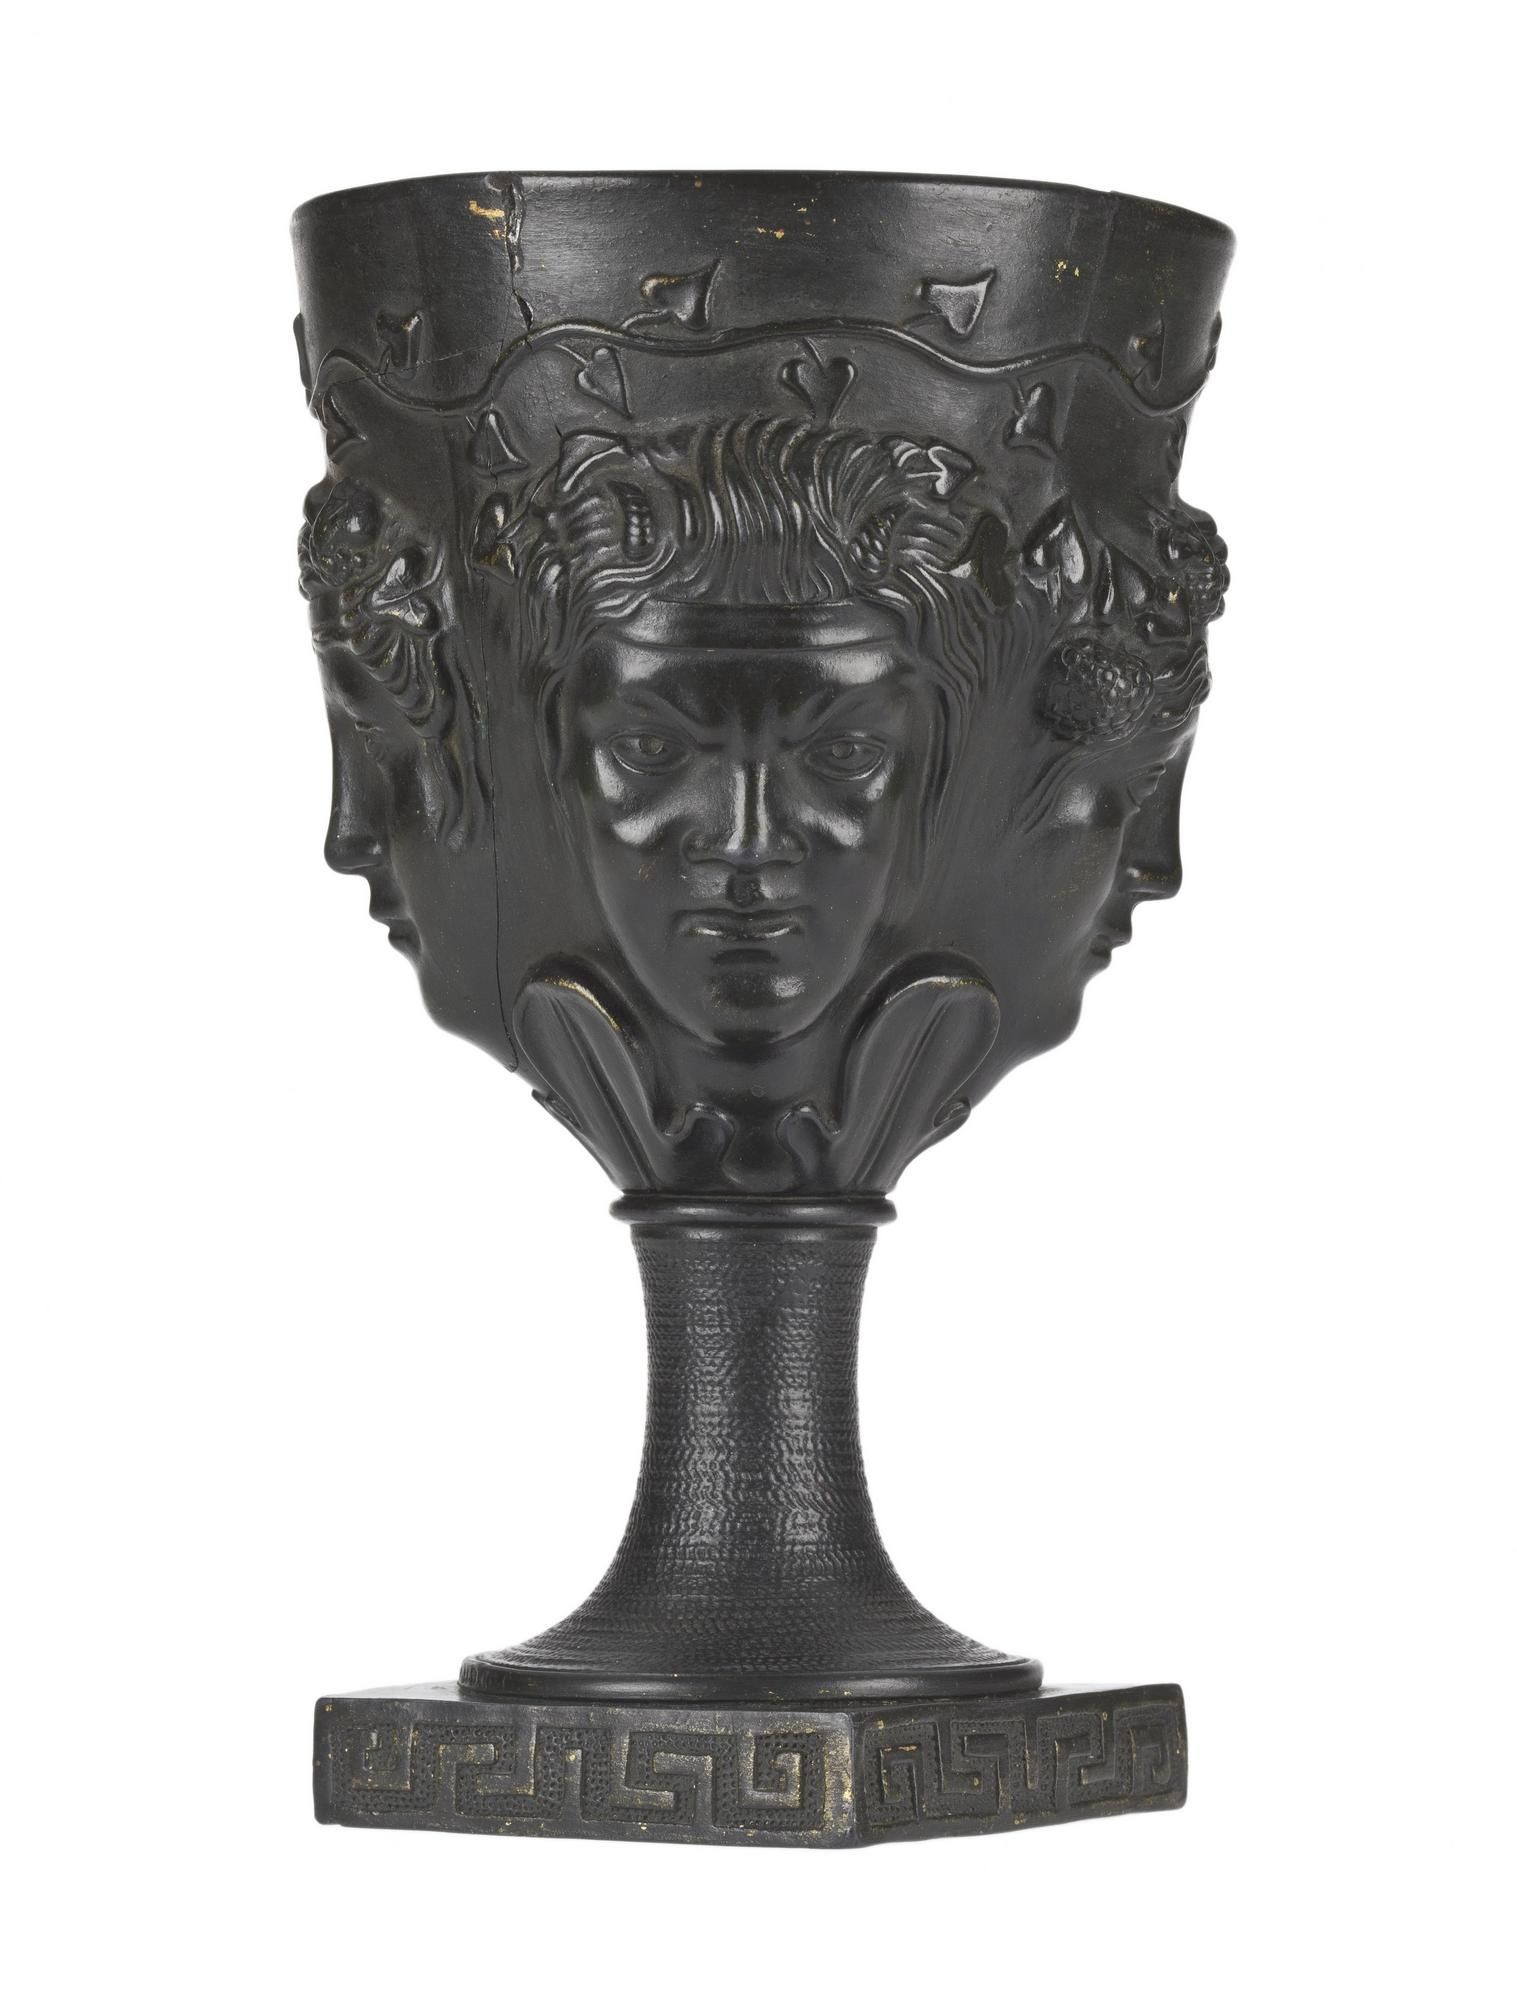 Goblet of 'Egyptian black' eartheware, bowl moulded in high